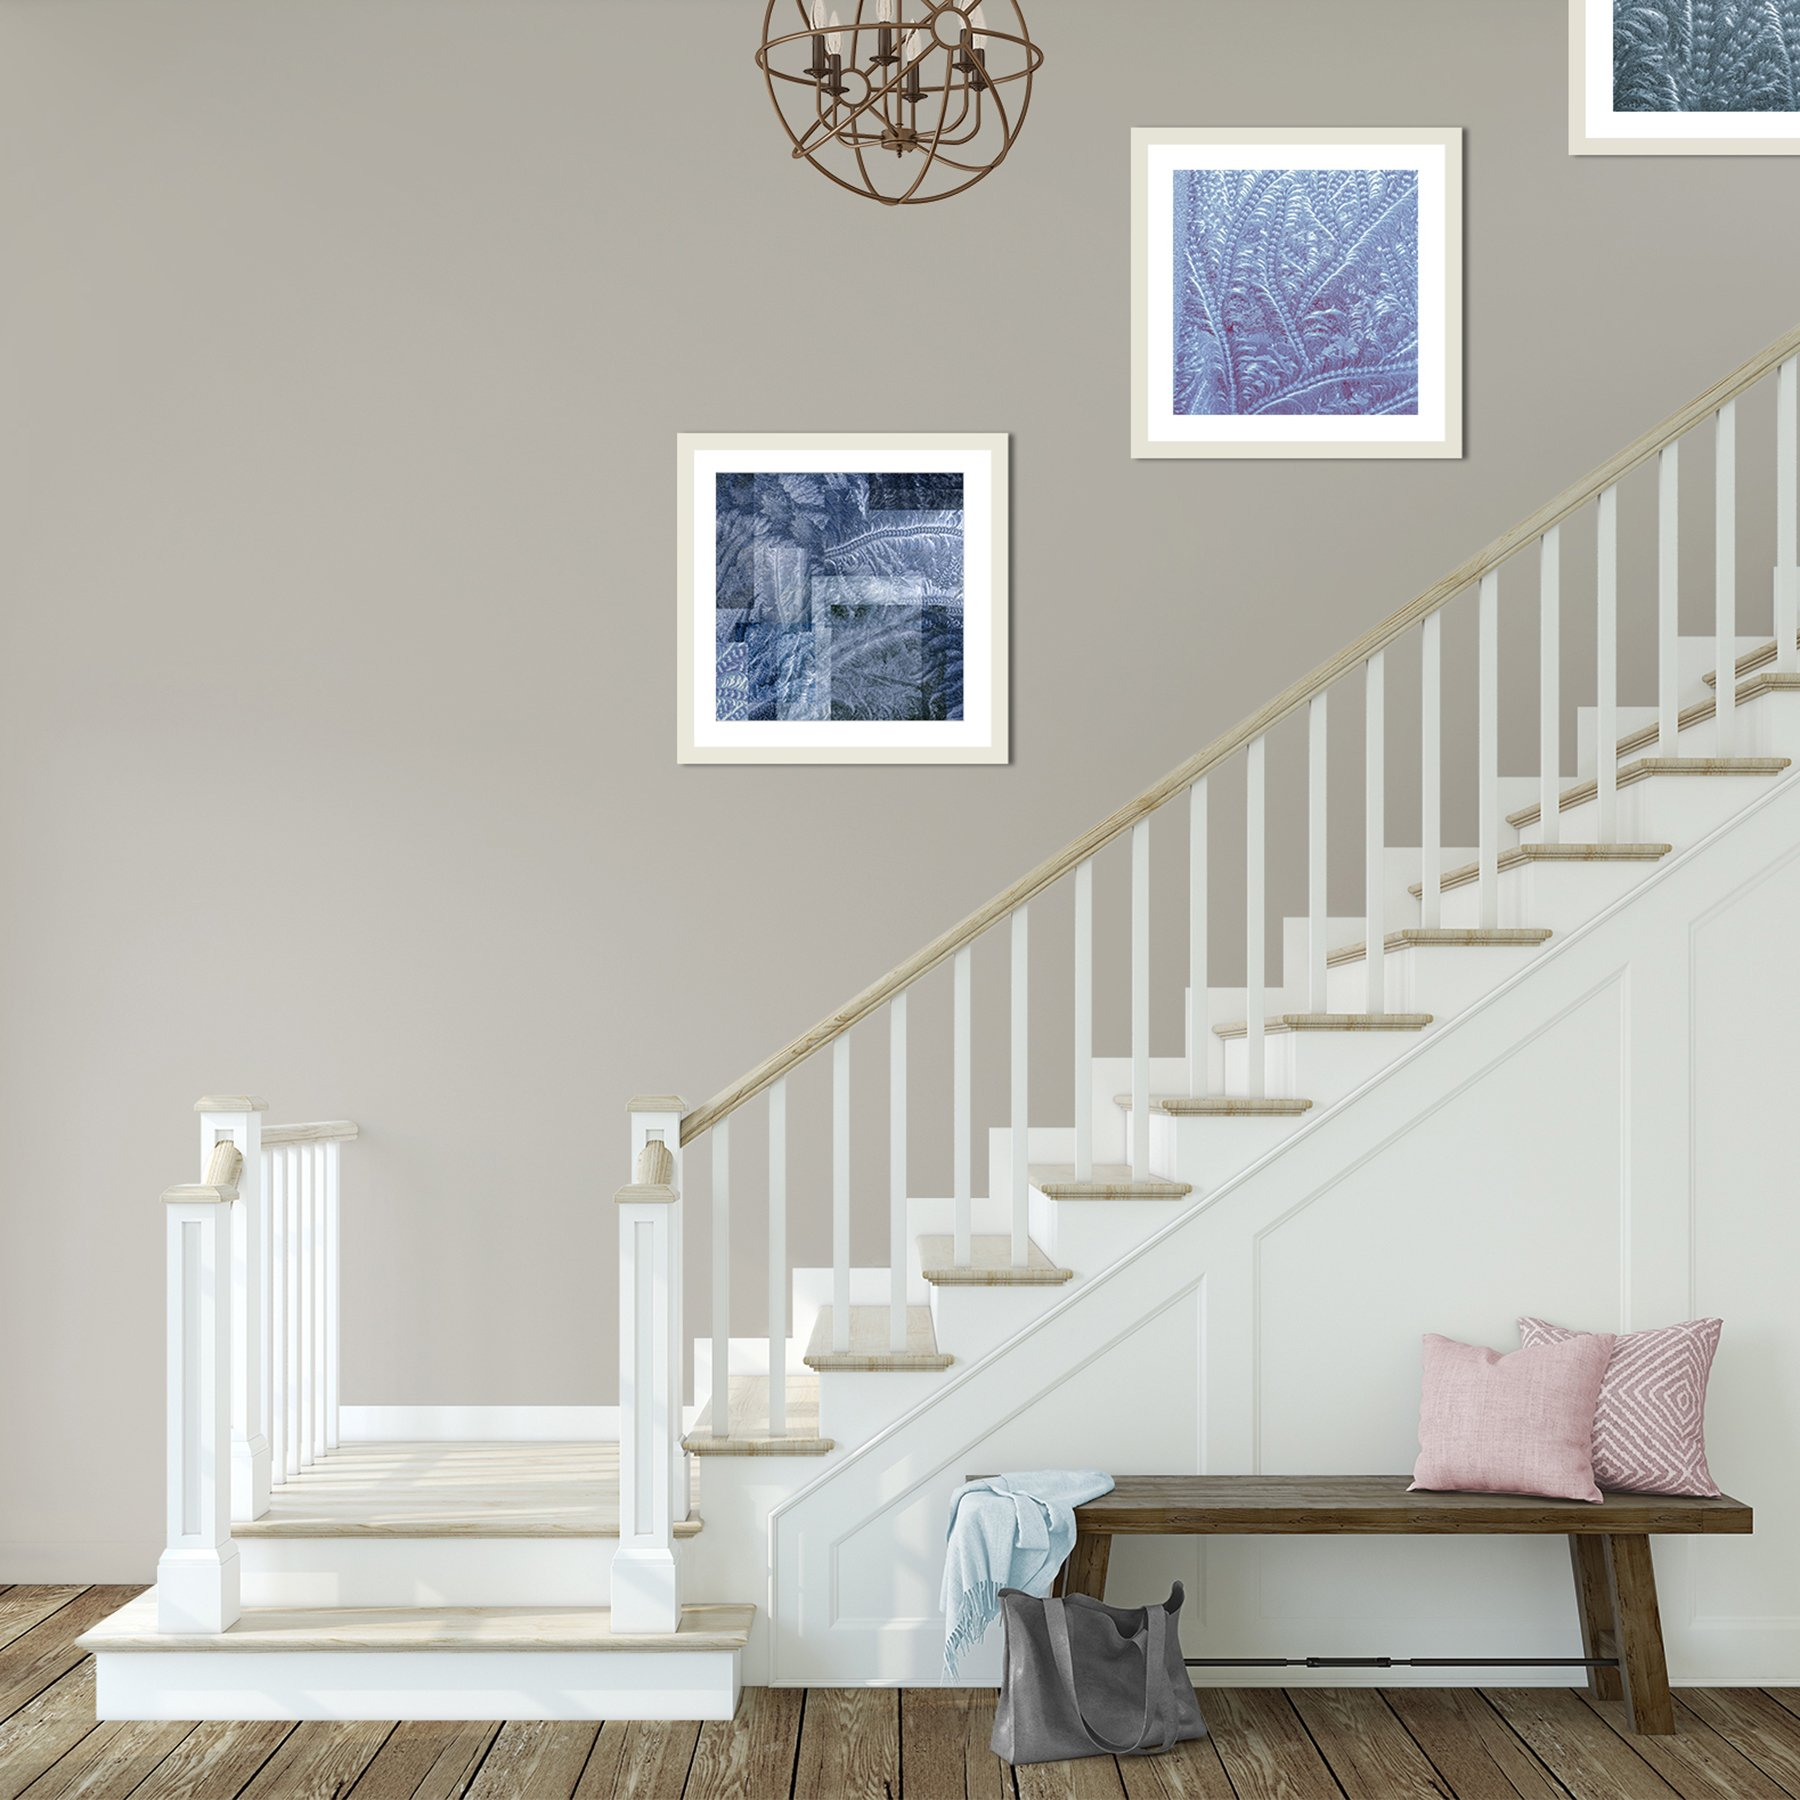 framed-prints-hanging-up-stairs-glass-on-glass